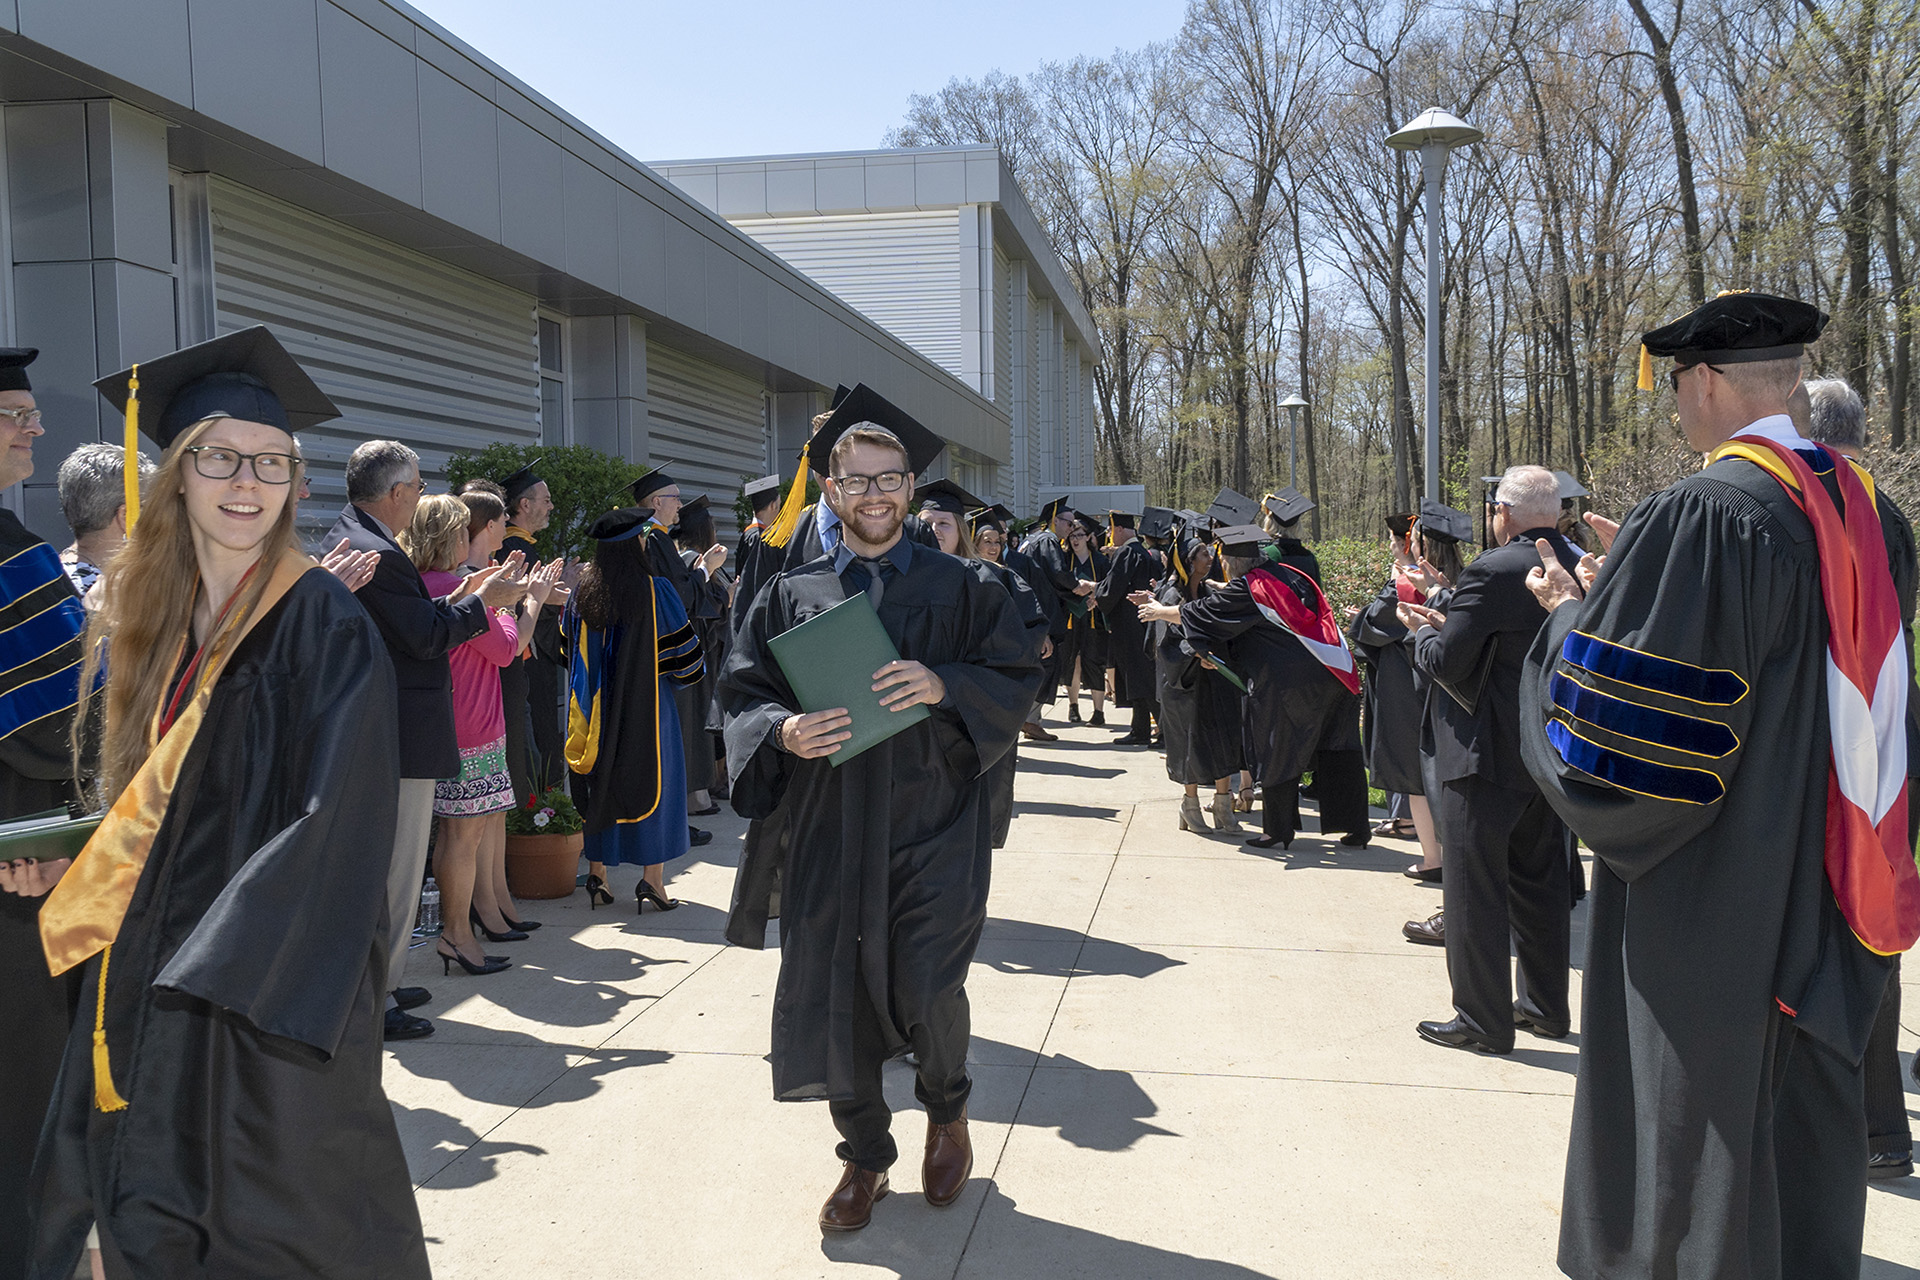 A student walking down the graduation gauntlet